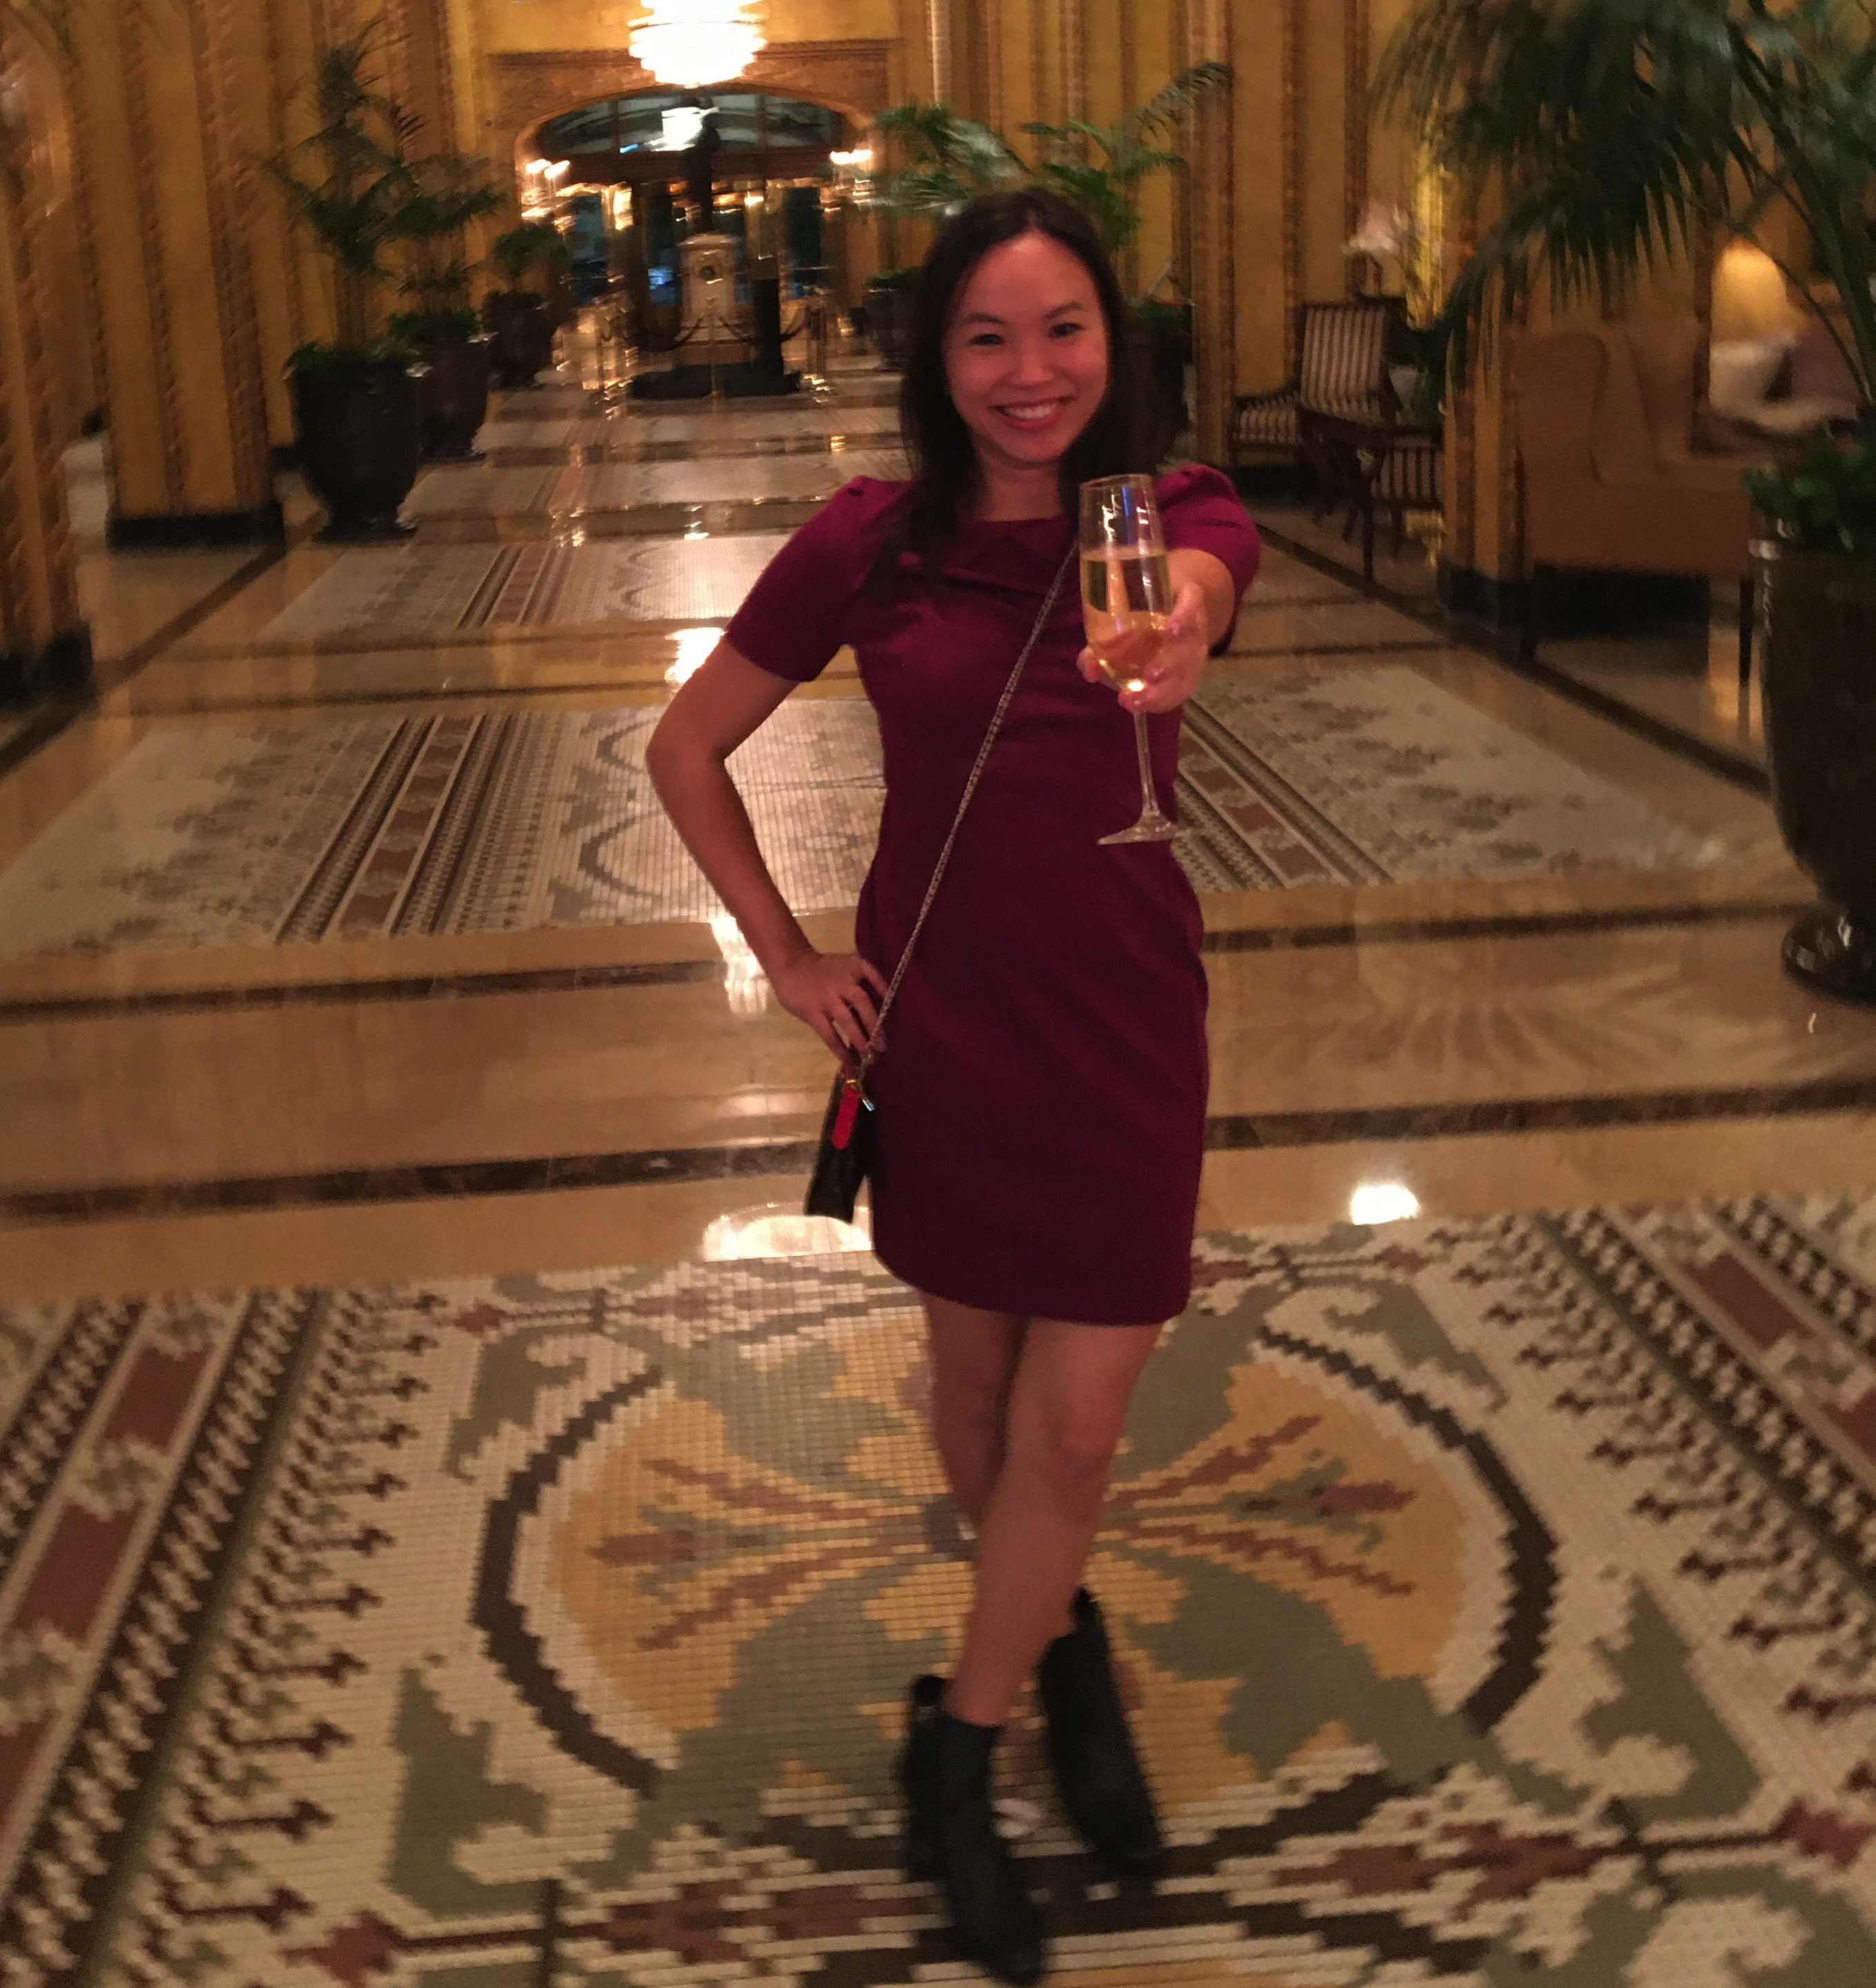 resenter: Dianne Shelton, Founder of Passion Breakthrough * Champagne not included